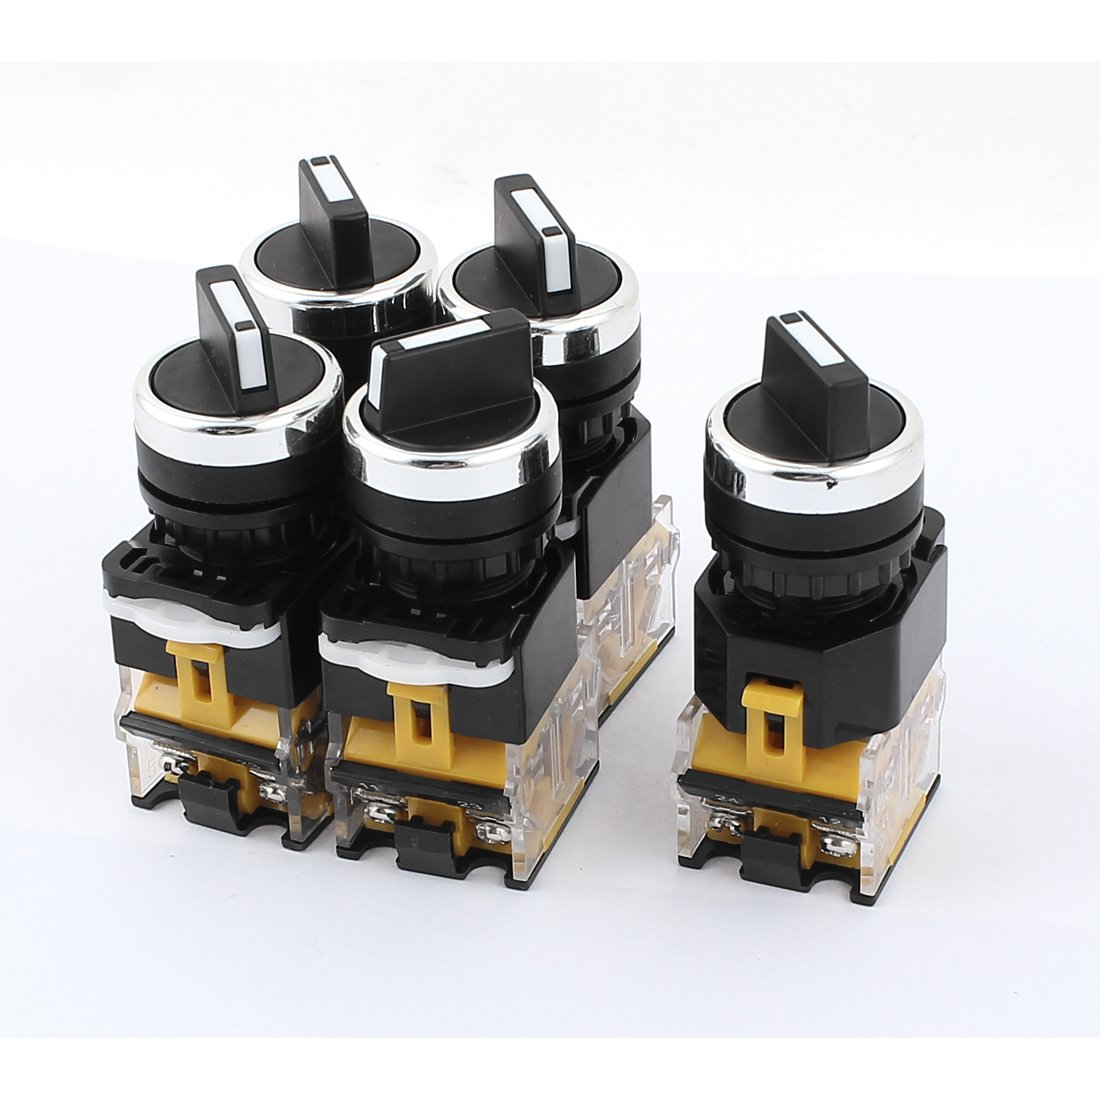 Uxcell a15072100ux0032 AC 380V 10 Amp, 2 Positions DPST Rotary Selector Select Switch Latching Lock 5 Piece